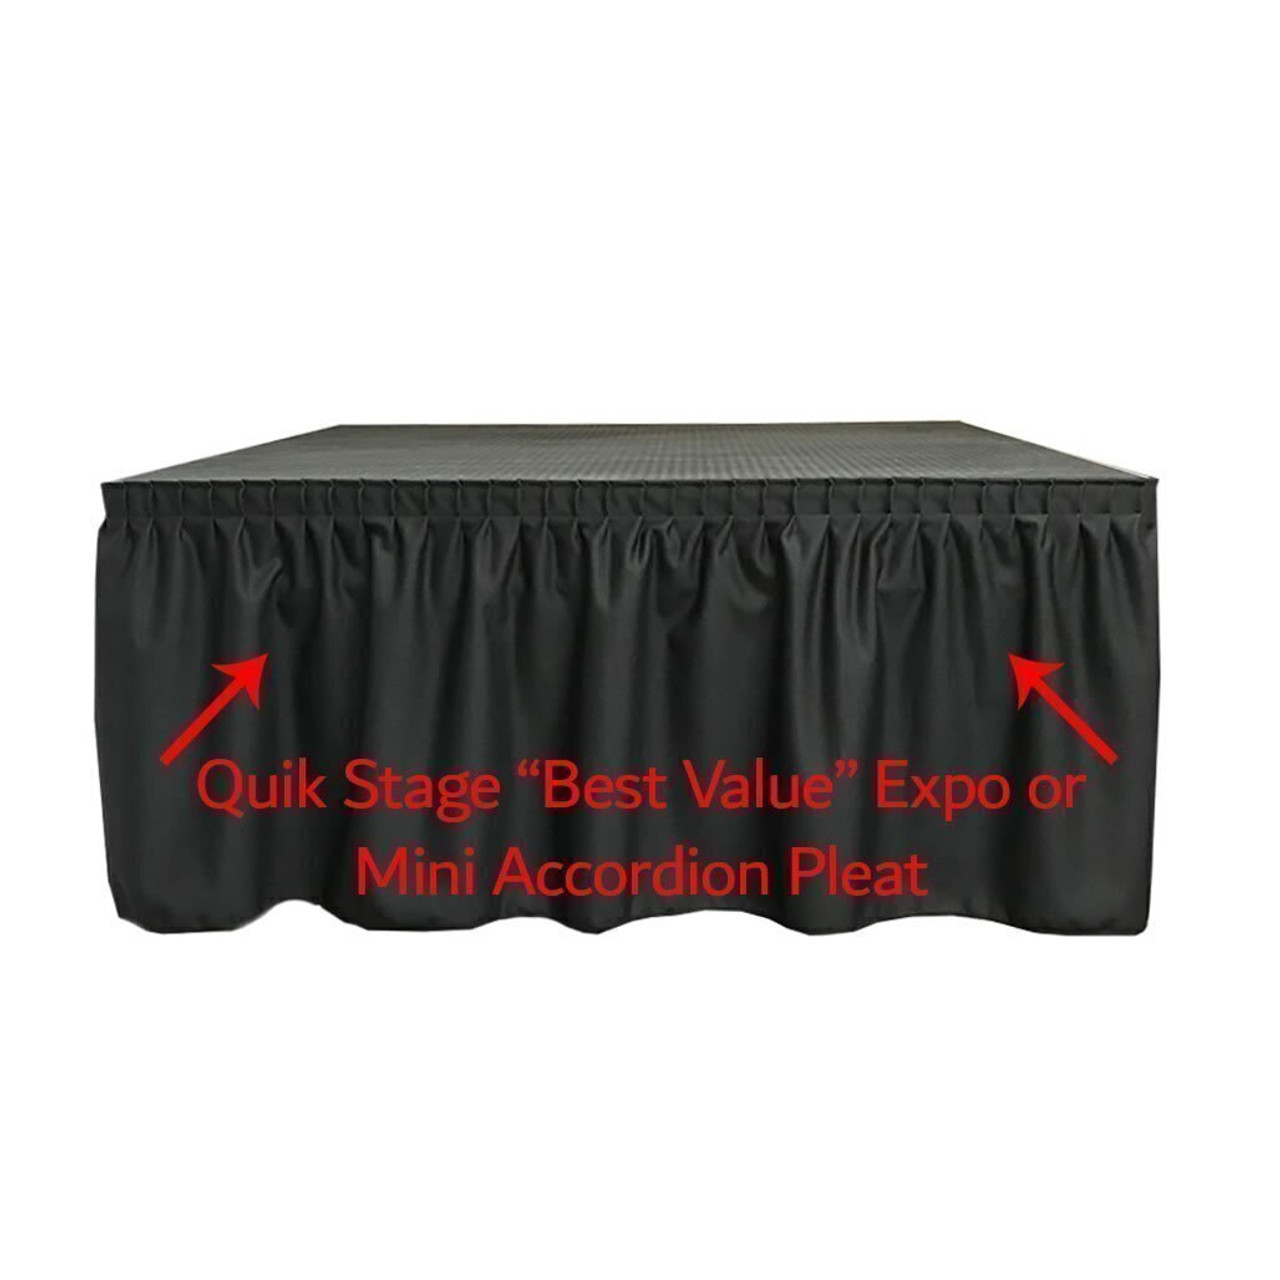 High Quality Quik Stage 8' x 24' High Portable Stage Package with Black Polyvinyl Non-Skid Surface. Additional Heights and Surfaces Available - Best Value Expo Pleat Stage Skirting